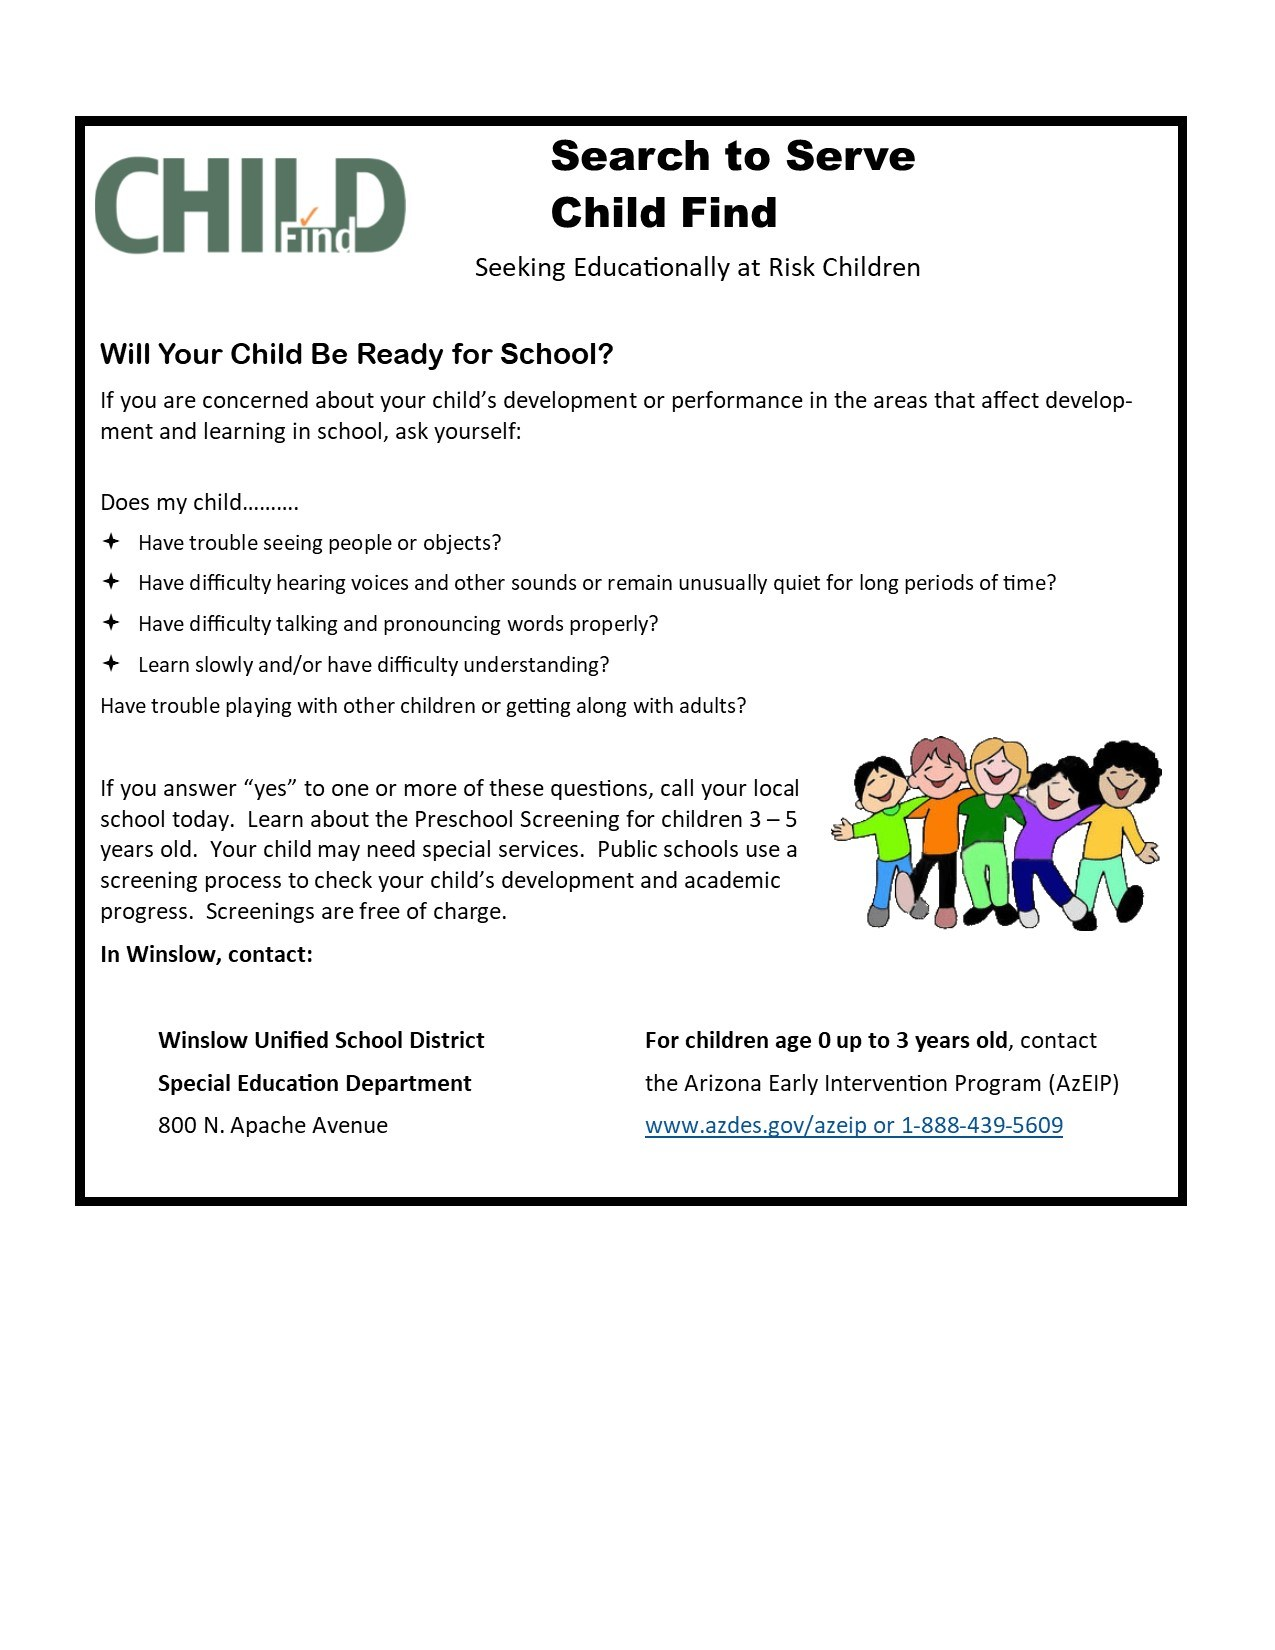 Is Special Education In Trouble >> Child Find Information Special Education Winslow Unified School